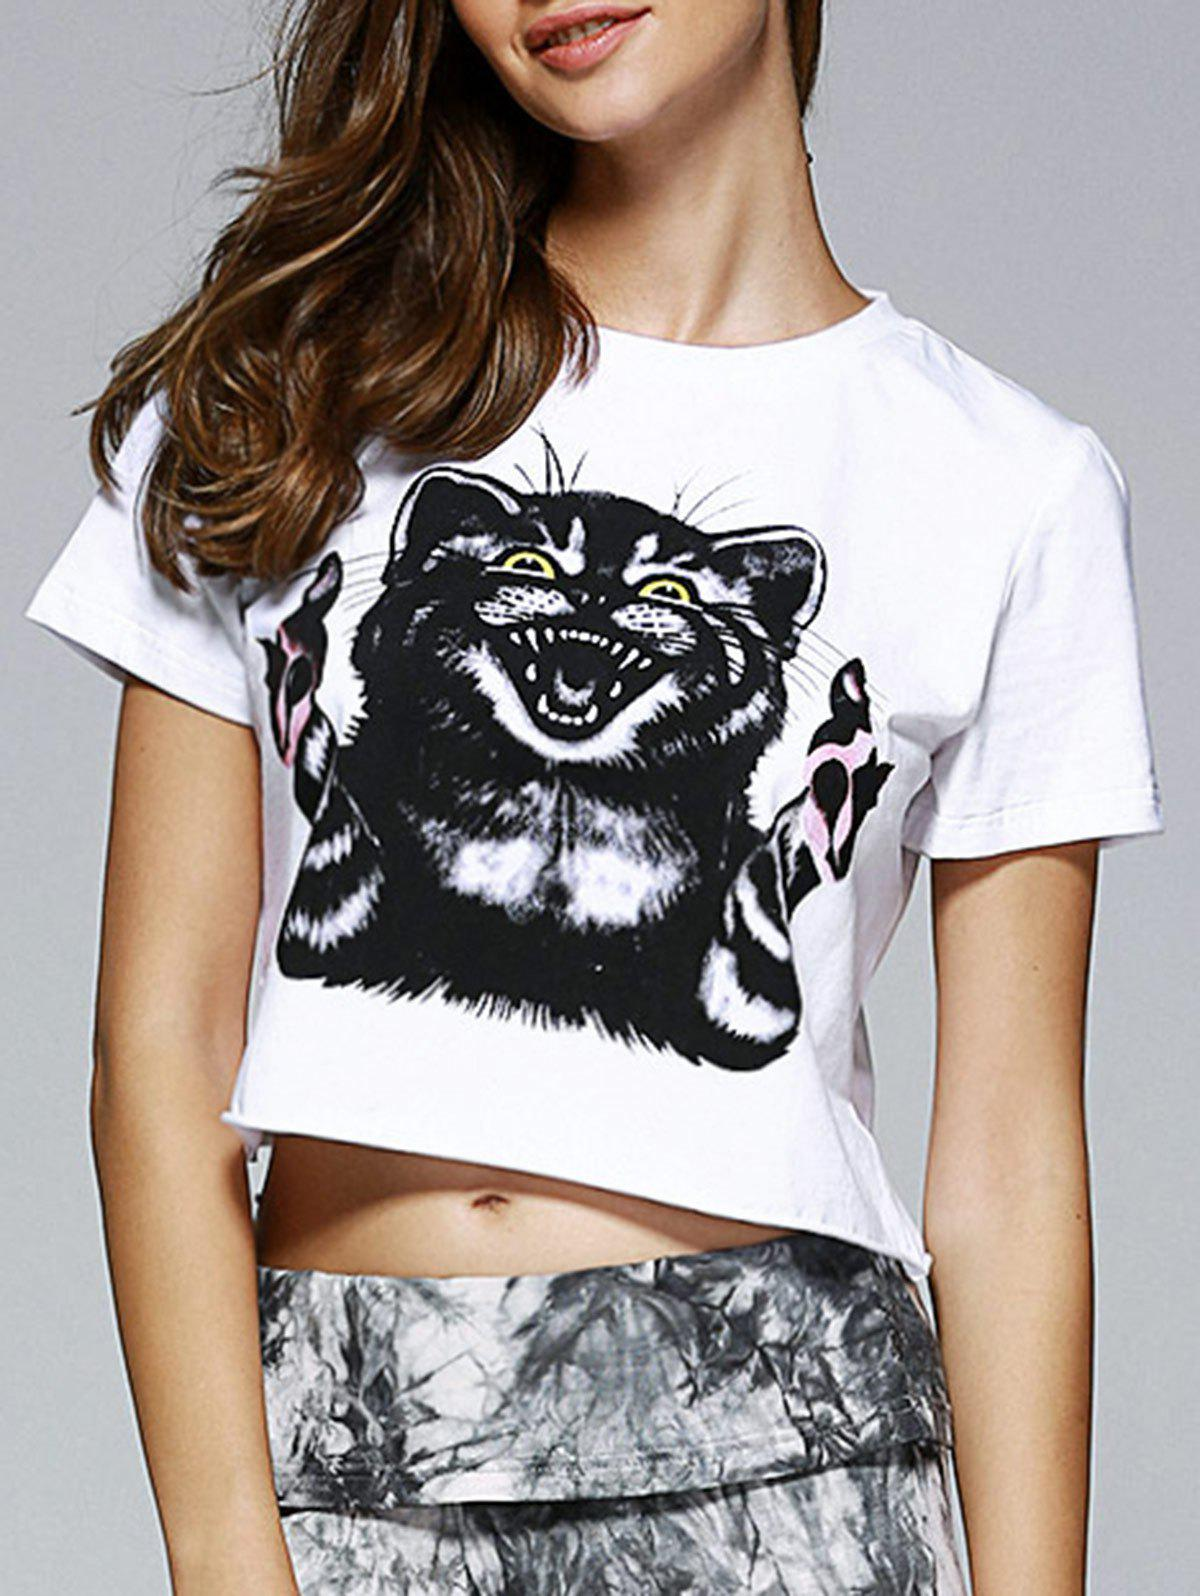 Fashionable Women's Round Neck Short Sleeve Animal Motifs Crop Top - WHITE XL